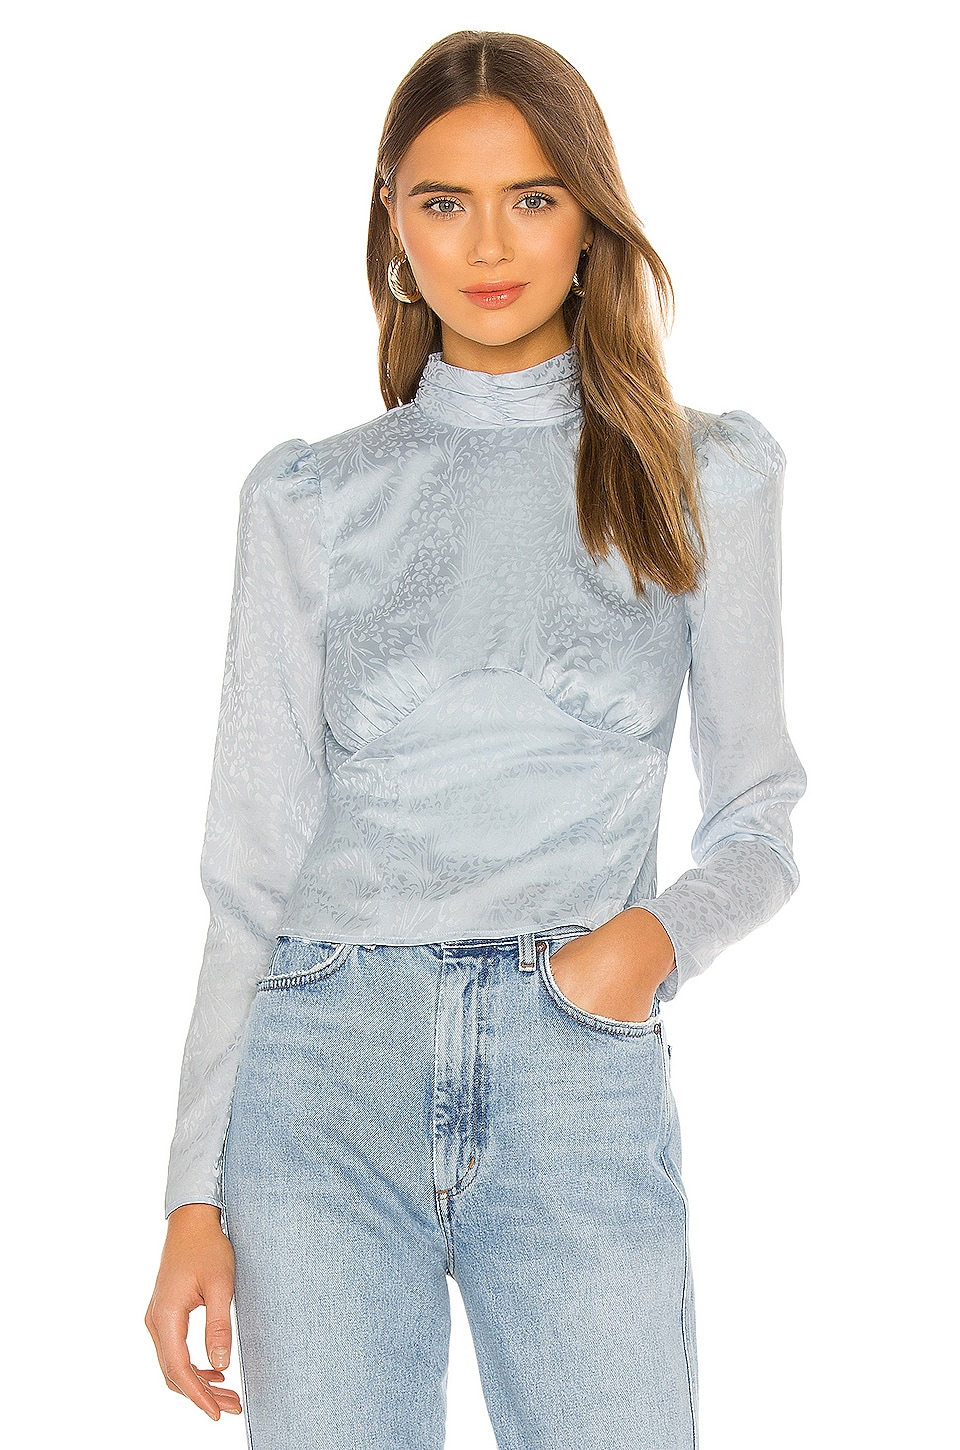 House of Harlow 1960 x REVOLVE Ahra Blouse in Dusty Blue